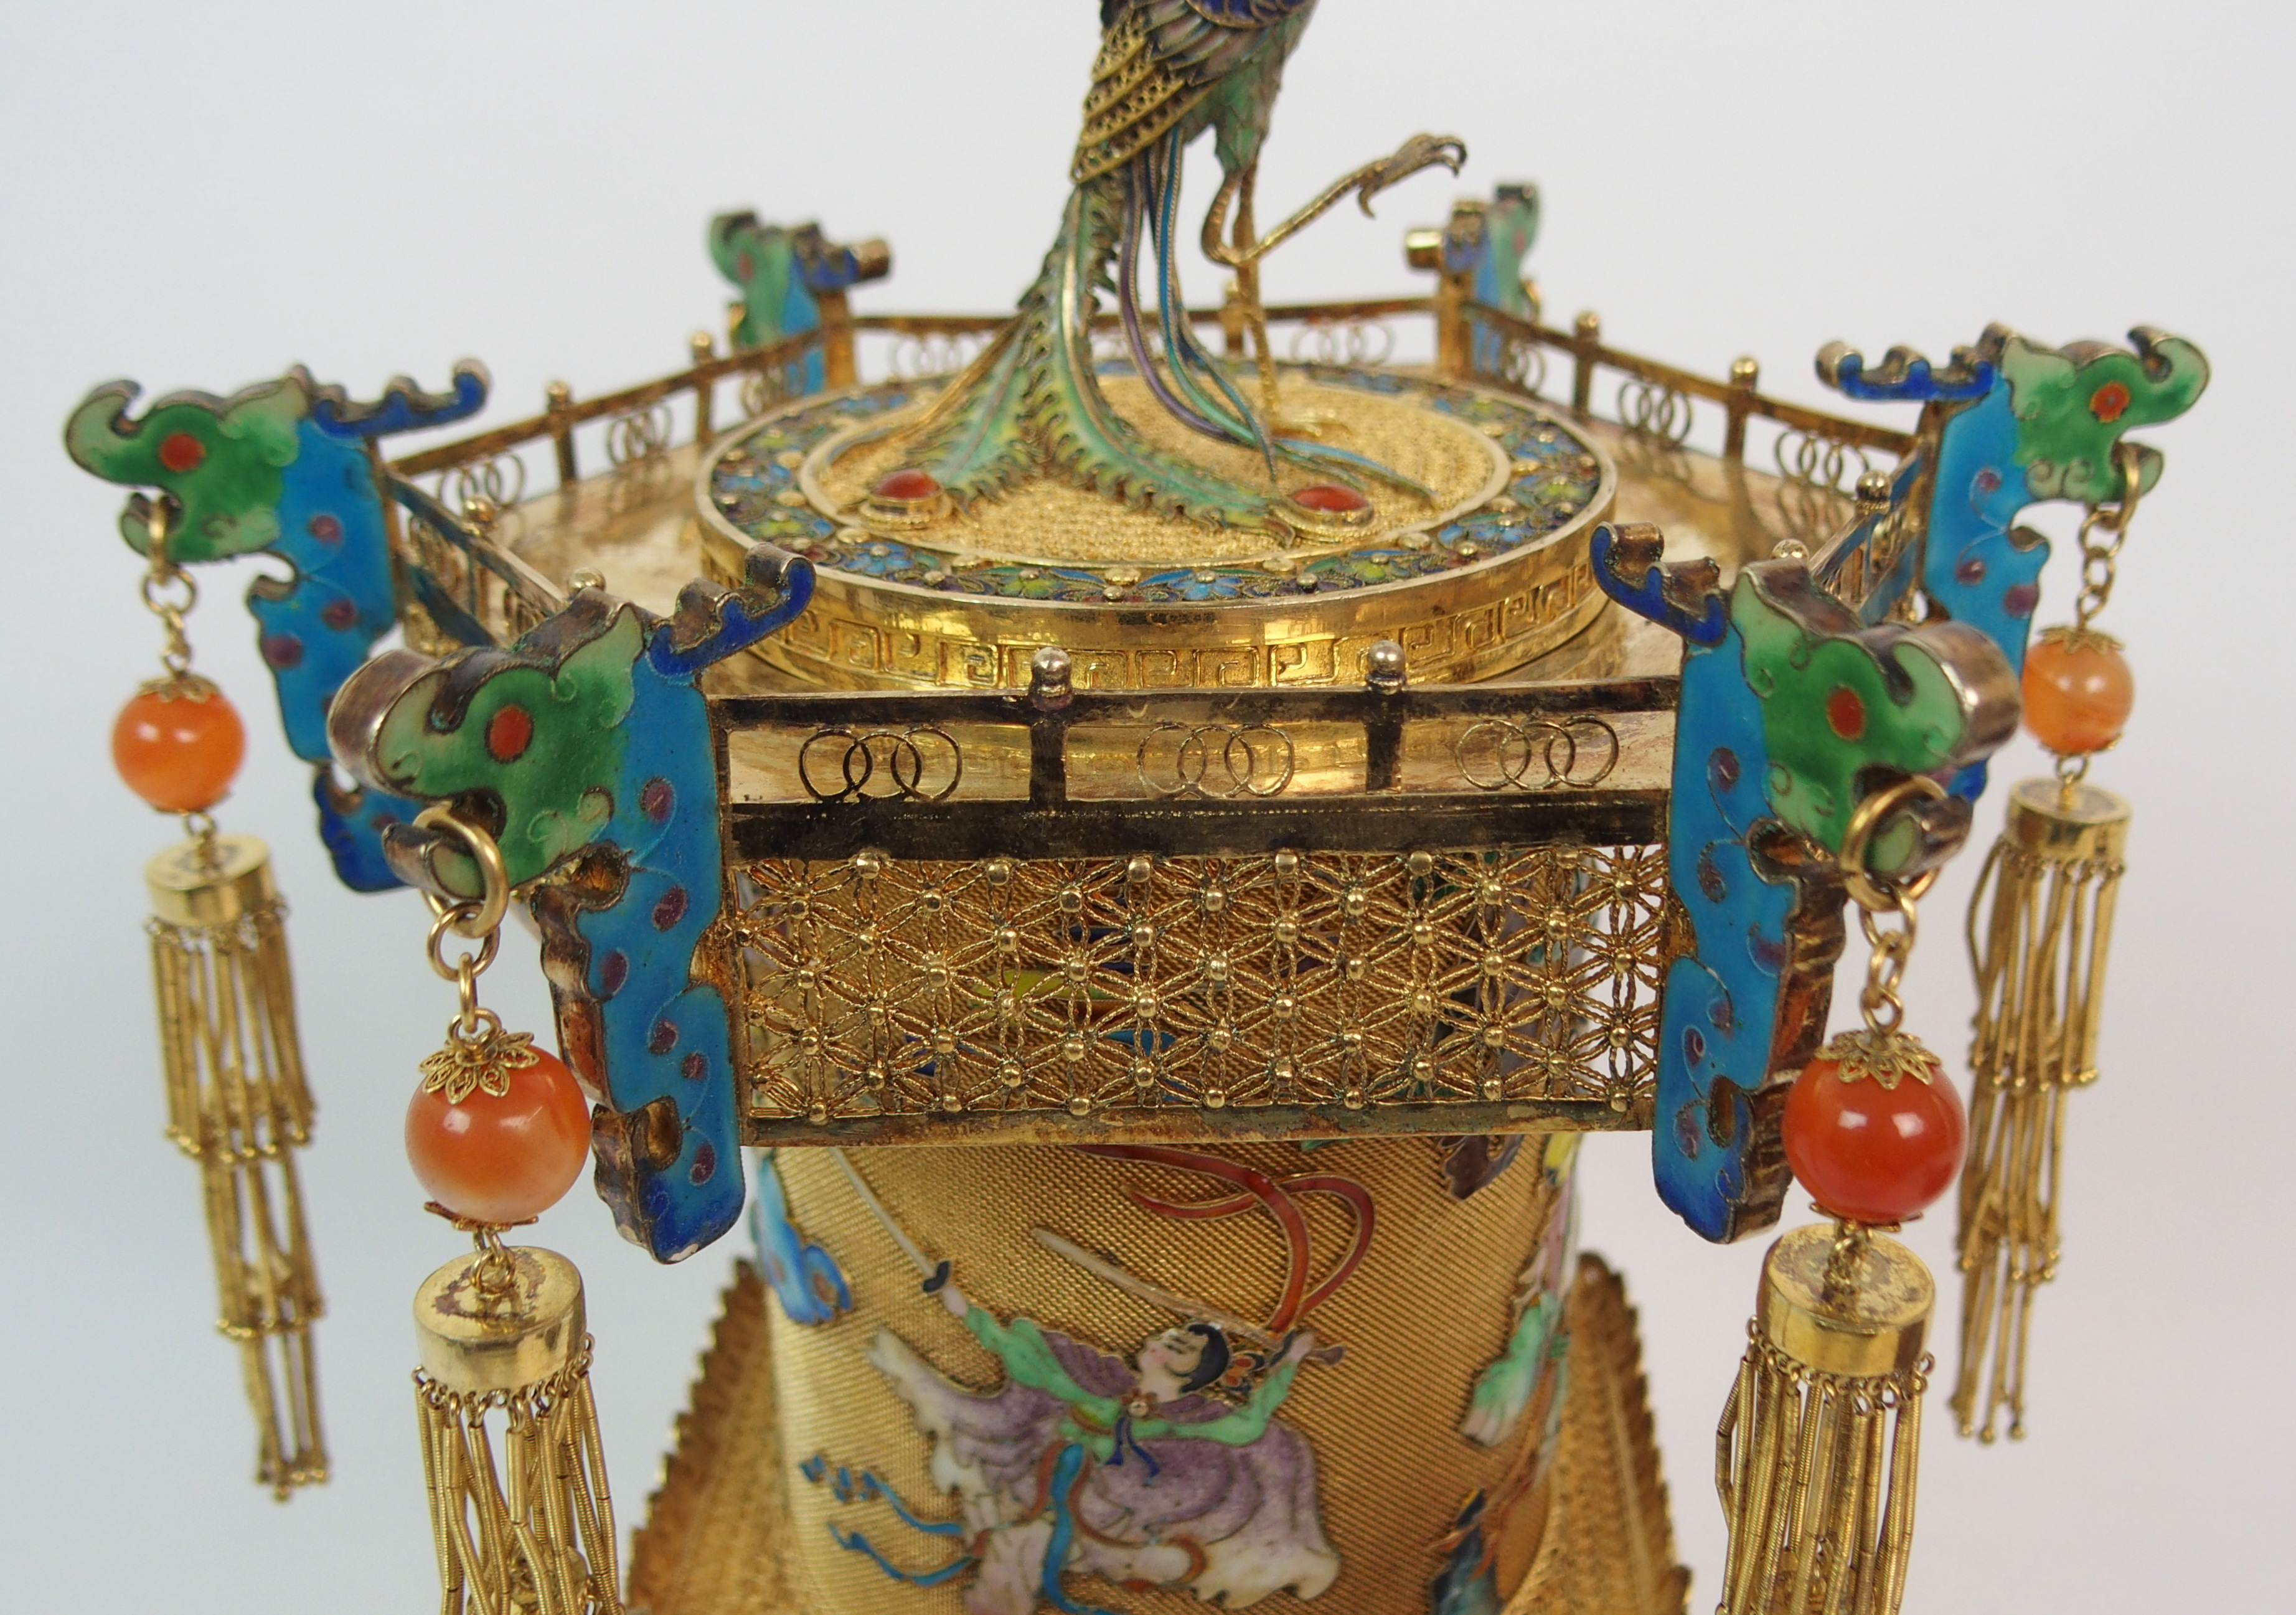 Lot 56 - A CHINESE GILT METAL, ENAMEL AND HARDSTONE HEXAGONAL PAGODA CENSER decorated with a peacock finial